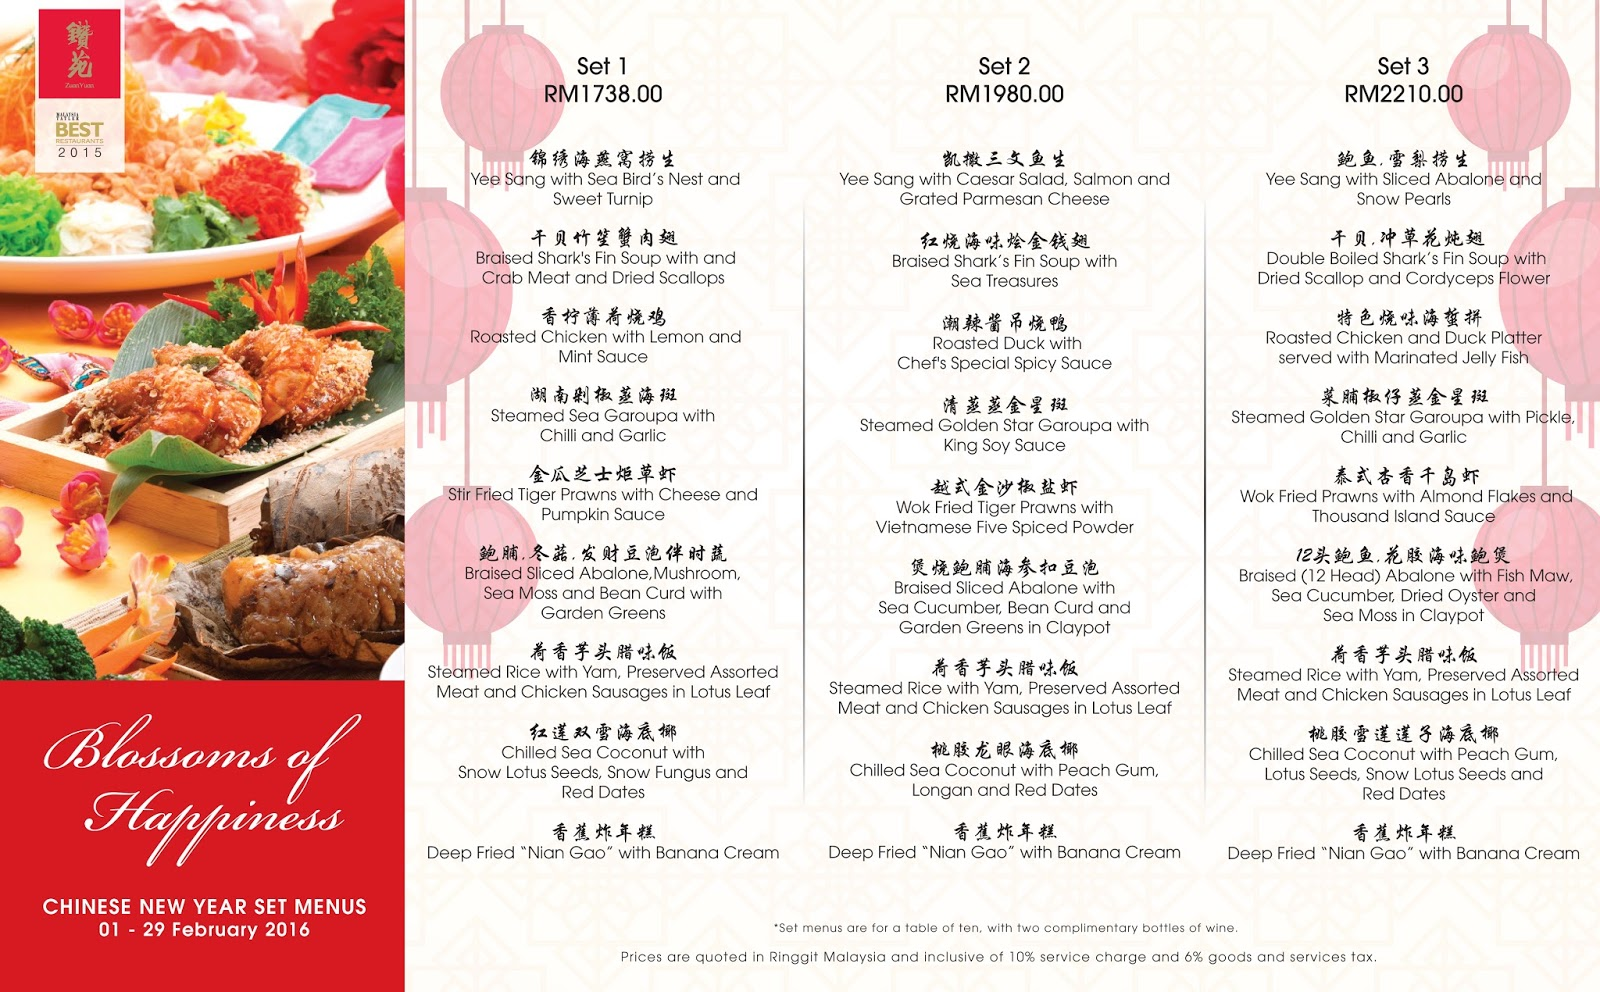 Jade Village Chinese Restaurant Menu